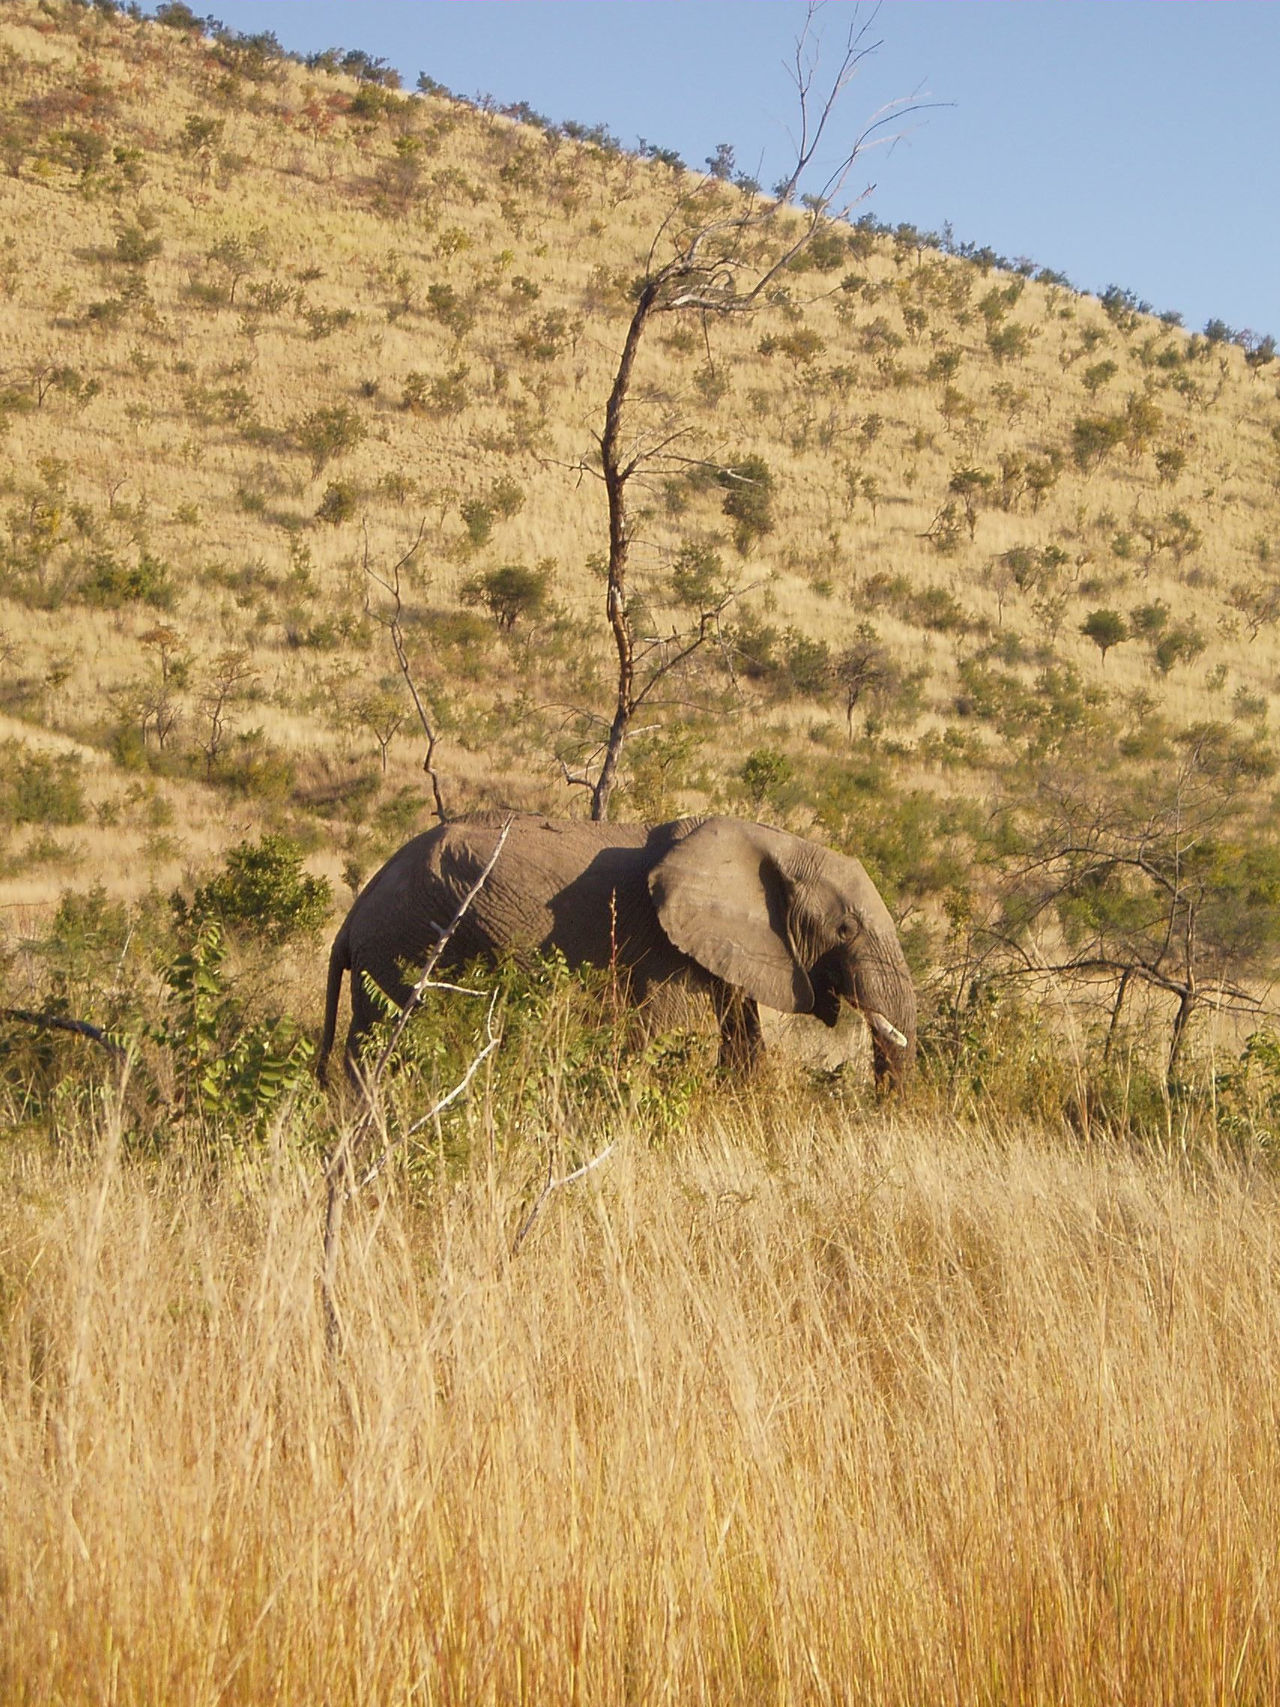 African Elephant Animal Themes Animal Wildlife Animals In The Wild Beauty In Nature Clear Sky Day Field Grass Landscape Mammal Nature No People One Animal Outdoors Safari Animals Sky South Africa Tree Tusk The Great Outdoors - 2017 EyeEm Awards